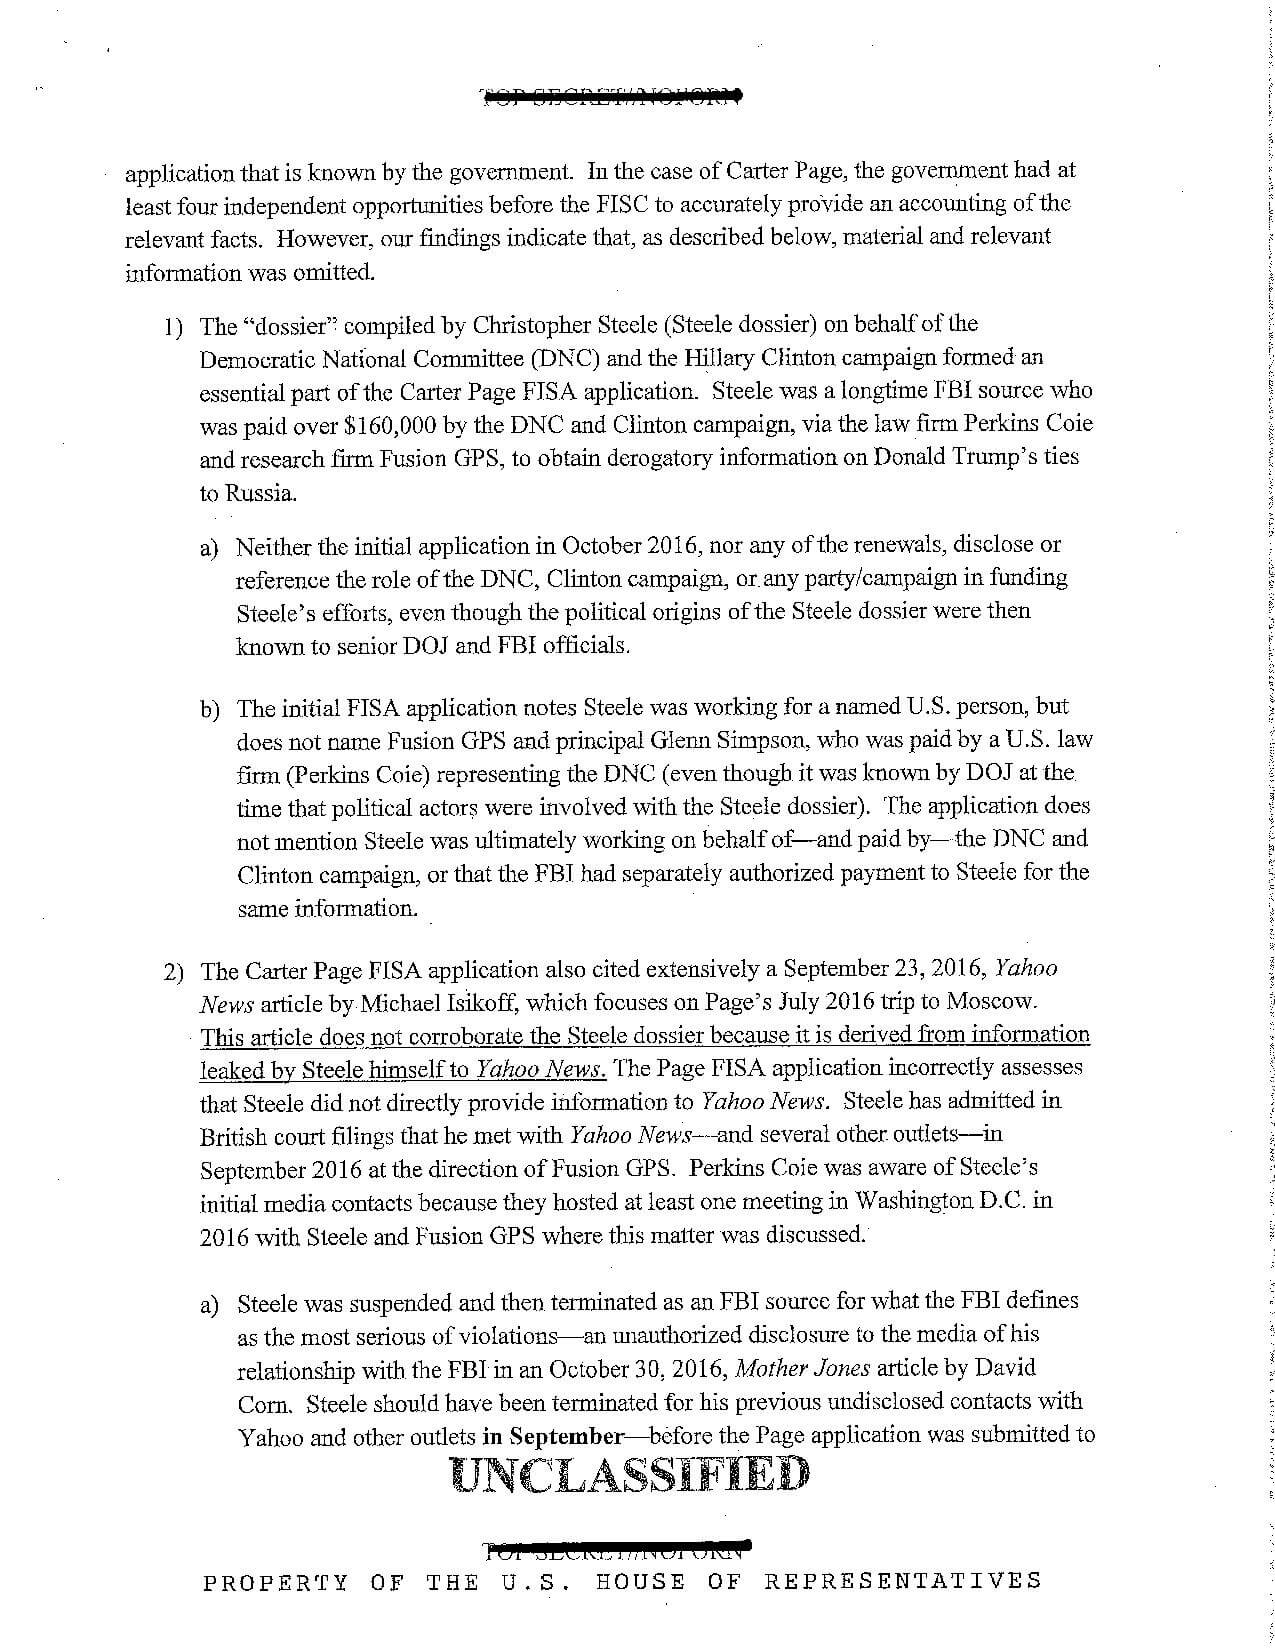 370599093-FISA-memo-Full-text-2-page-004